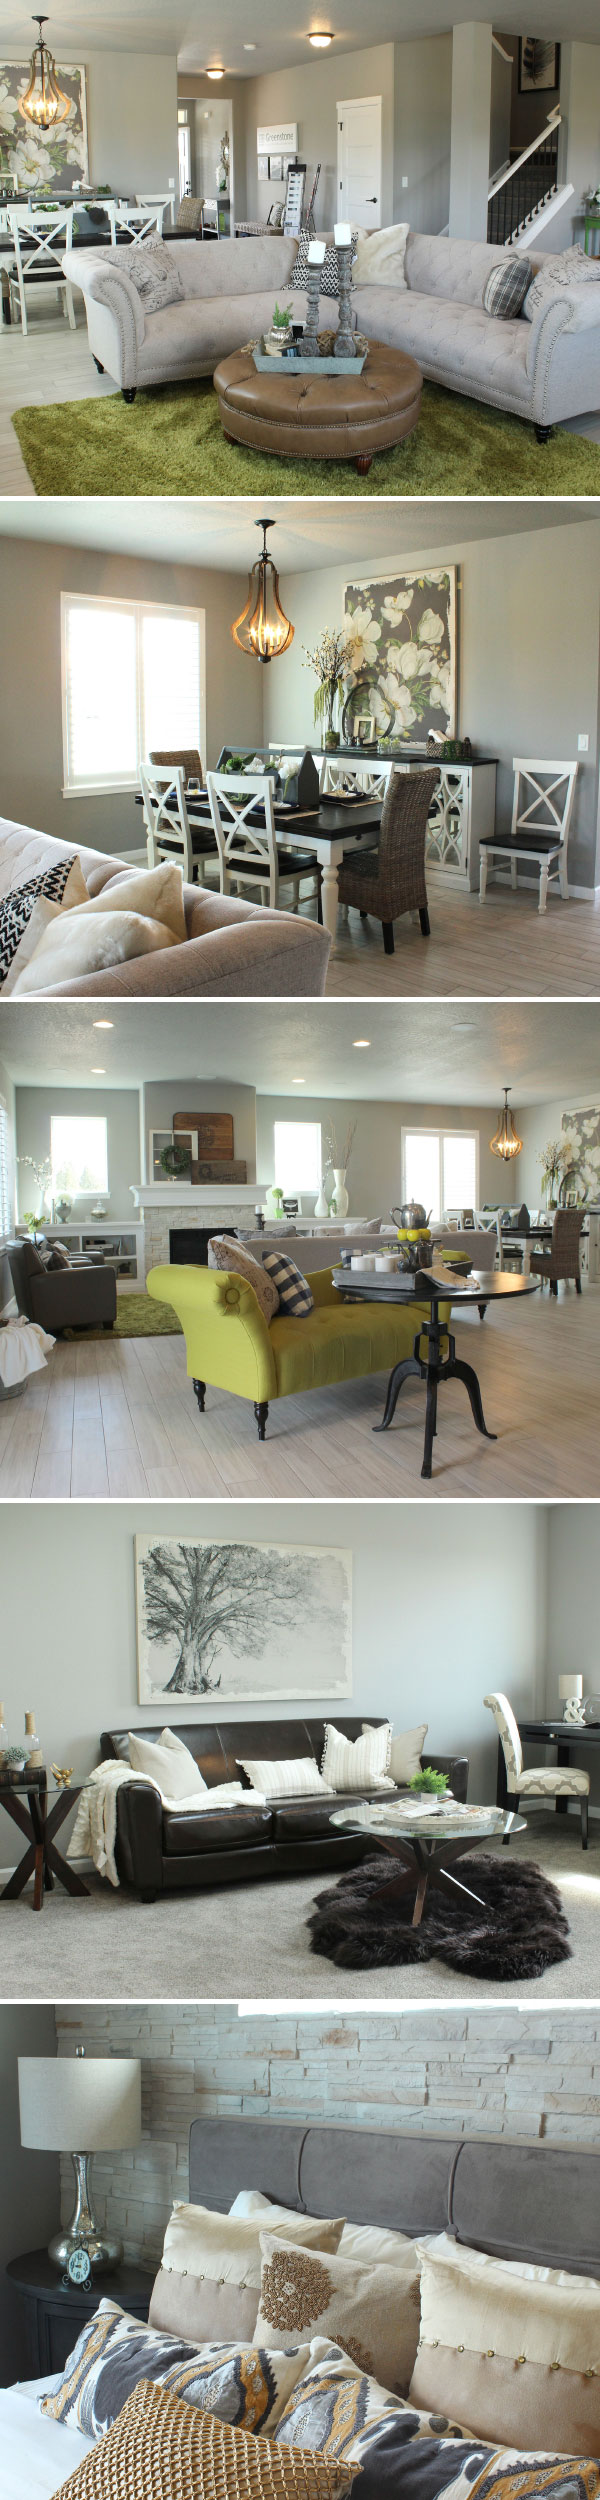 Modern Farmhouse Style With Green Accents. Furniture And Decor By The Tin  Roof In Spokane